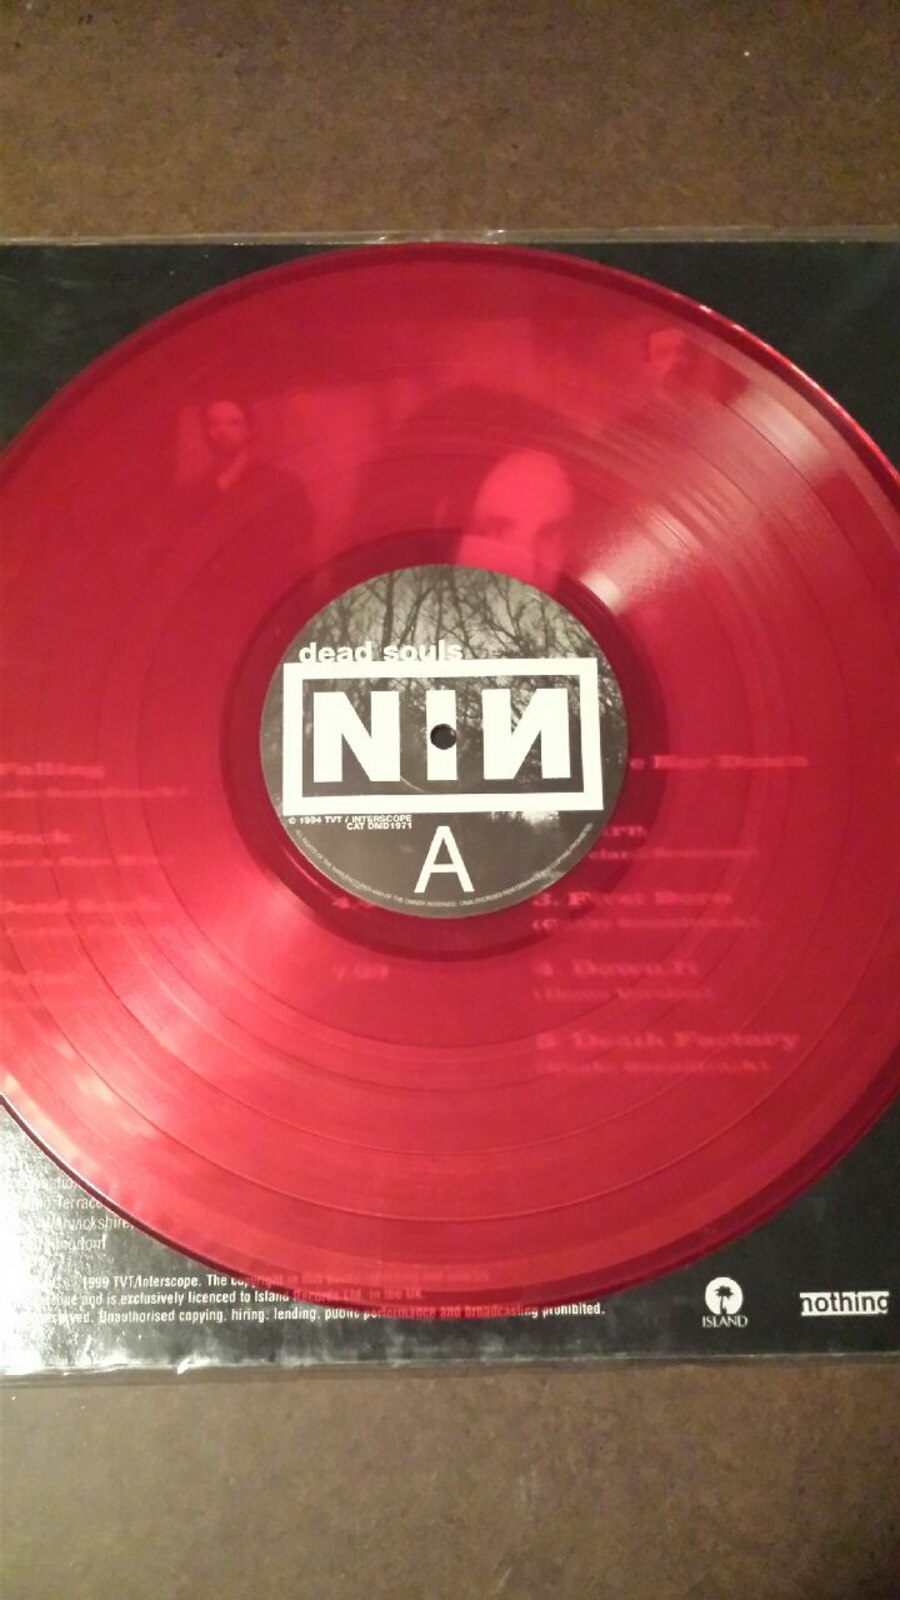 Used NINE INCH NAILS. DEAD SOULS VINYL 12 INCH RED in Lakeland - letgo